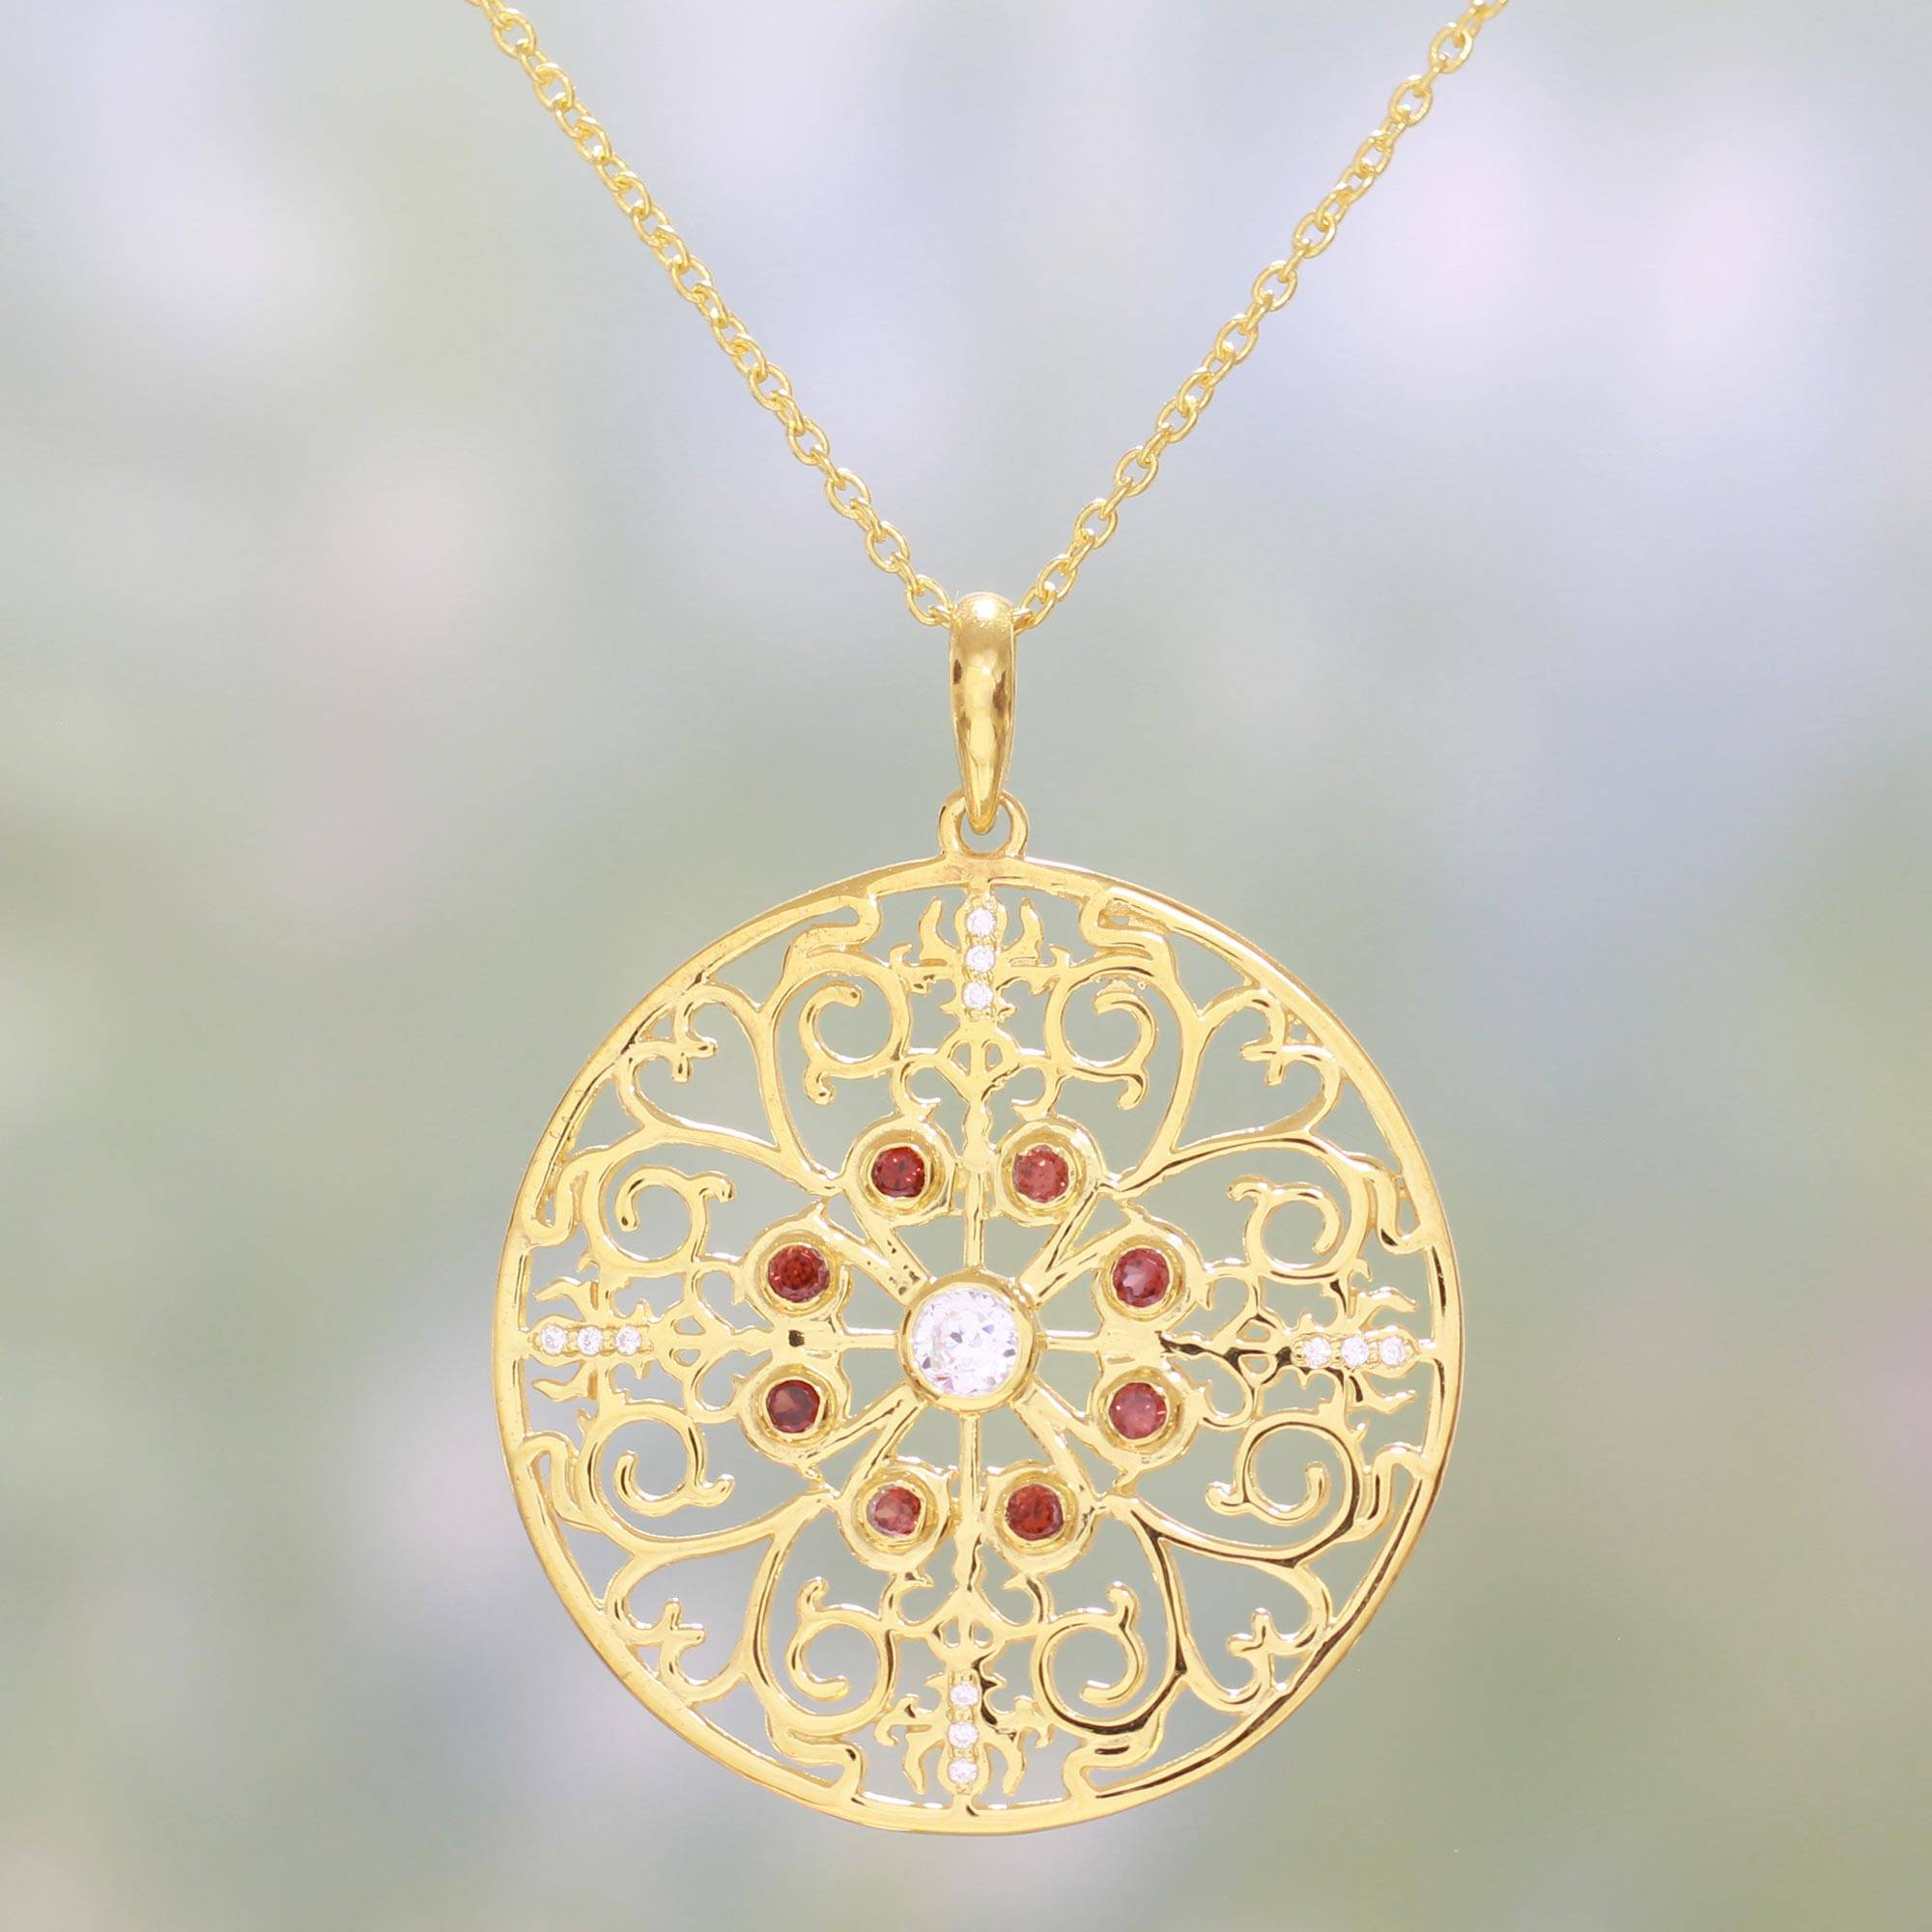 Artisan Crafted Gold Plated Garnet Indian Pendant Necklace, 'sparkling Vines In Red' Intended For Most Popular Sparkling Stones Pendant Necklaces (View 16 of 25)